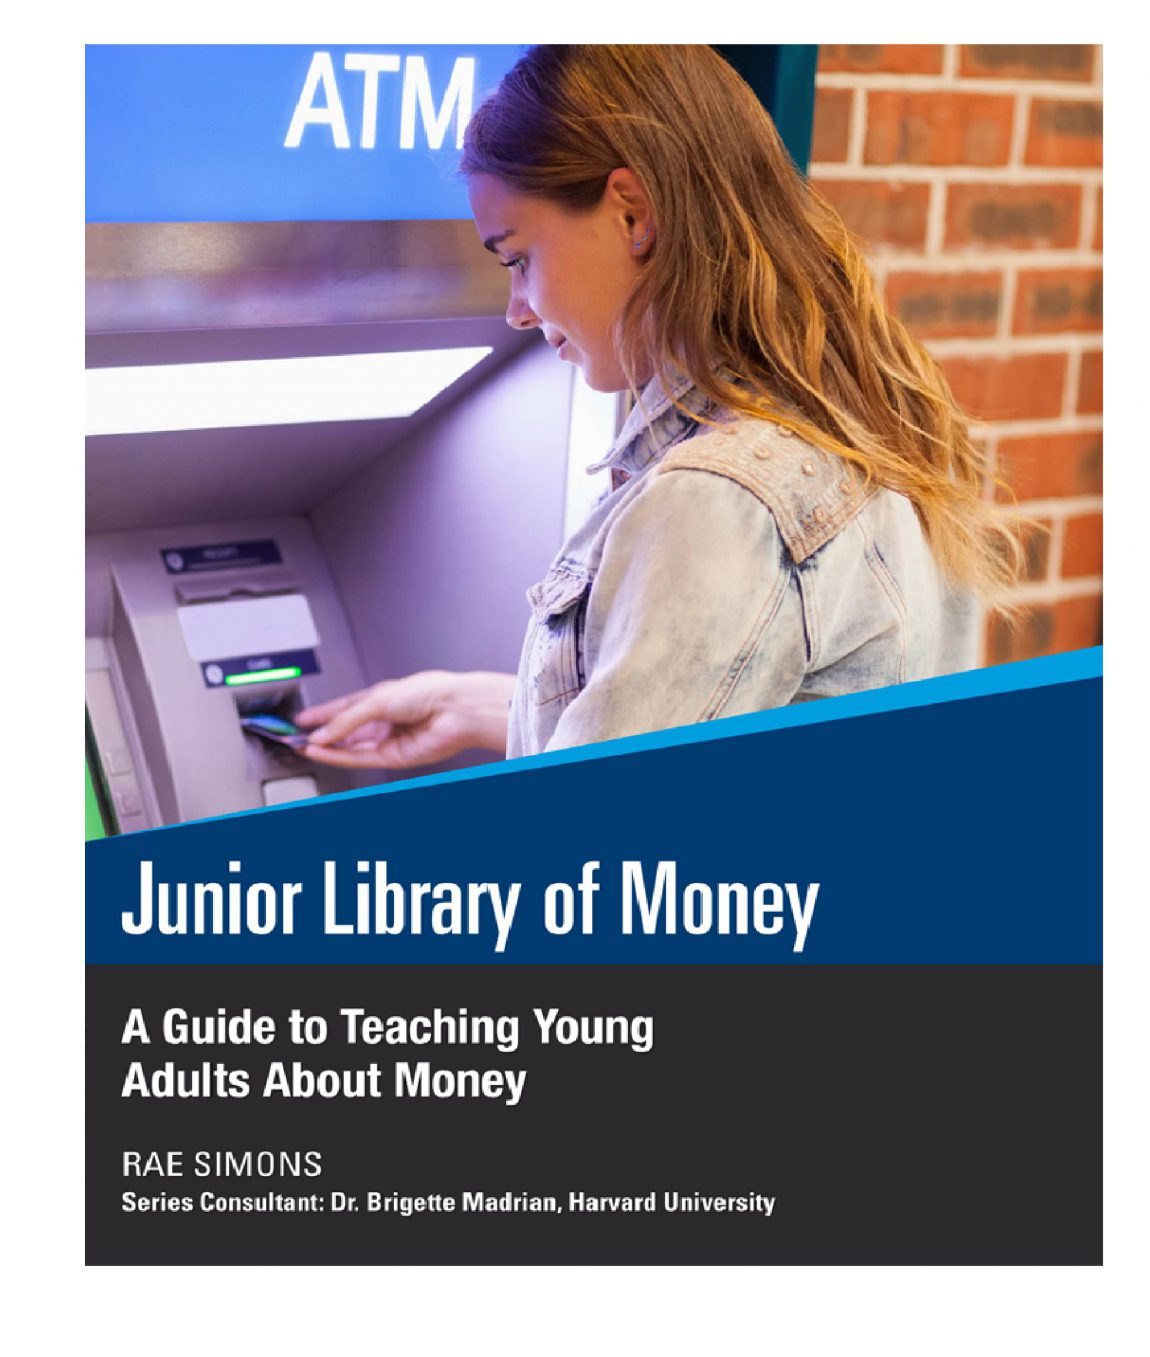 Junior-Library-of-Money-01-01-01.jpg